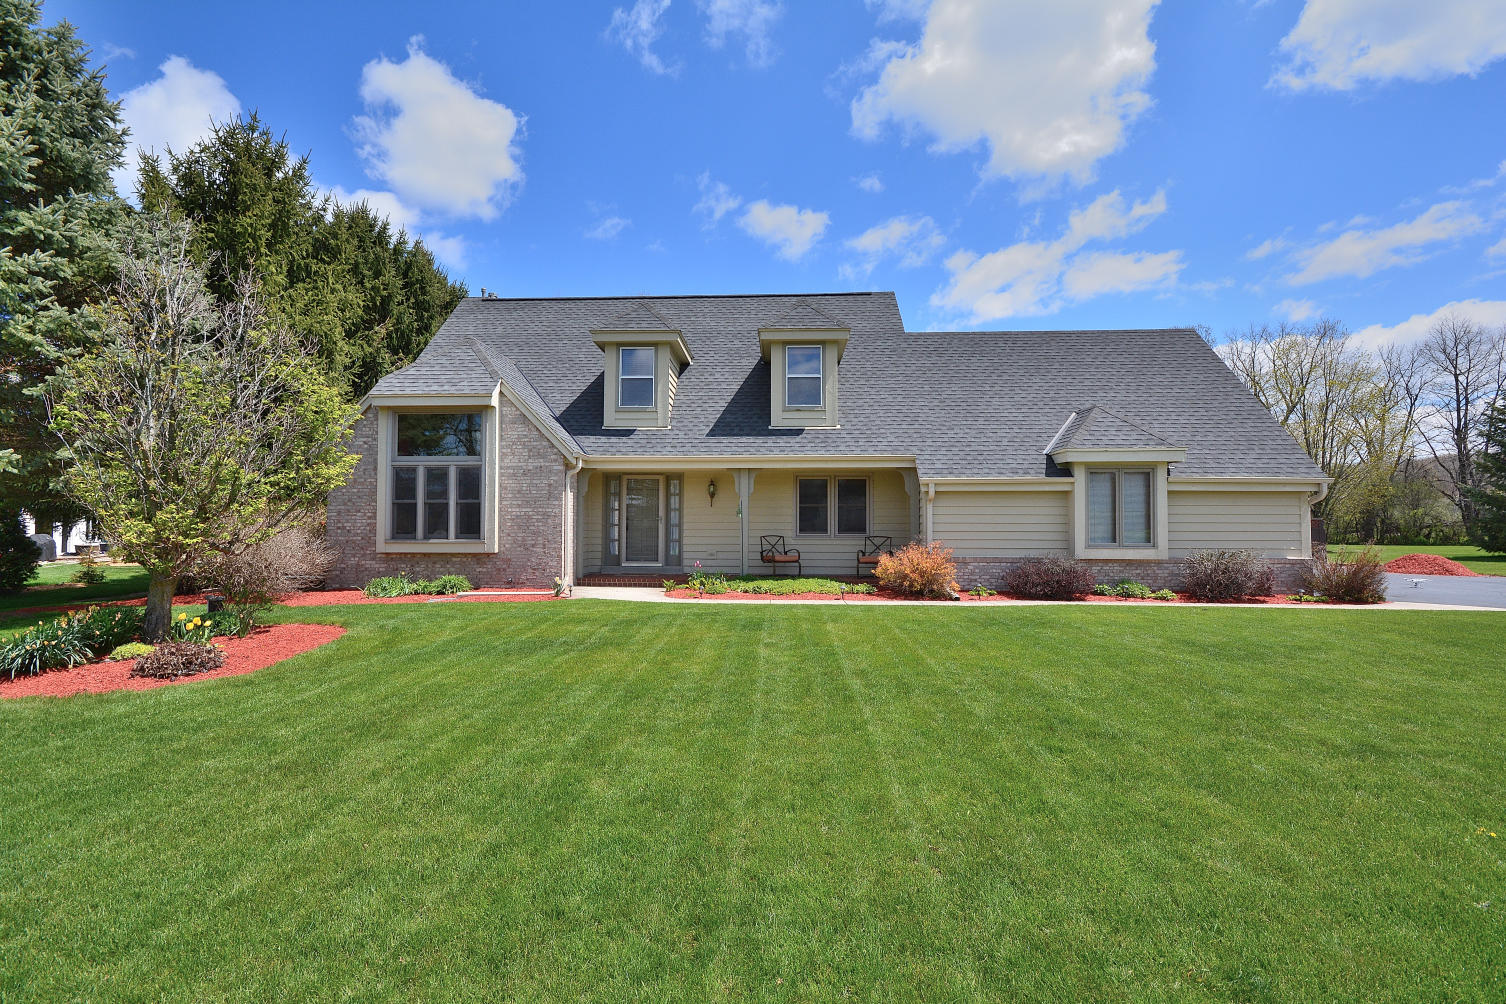 W232S5200 Hunters Hollow, Waukesha, Wisconsin 53189, 3 Bedrooms Bedrooms, 9 Rooms Rooms,2 BathroomsBathrooms,Single-Family,For Sale,Hunters Hollow,1689115